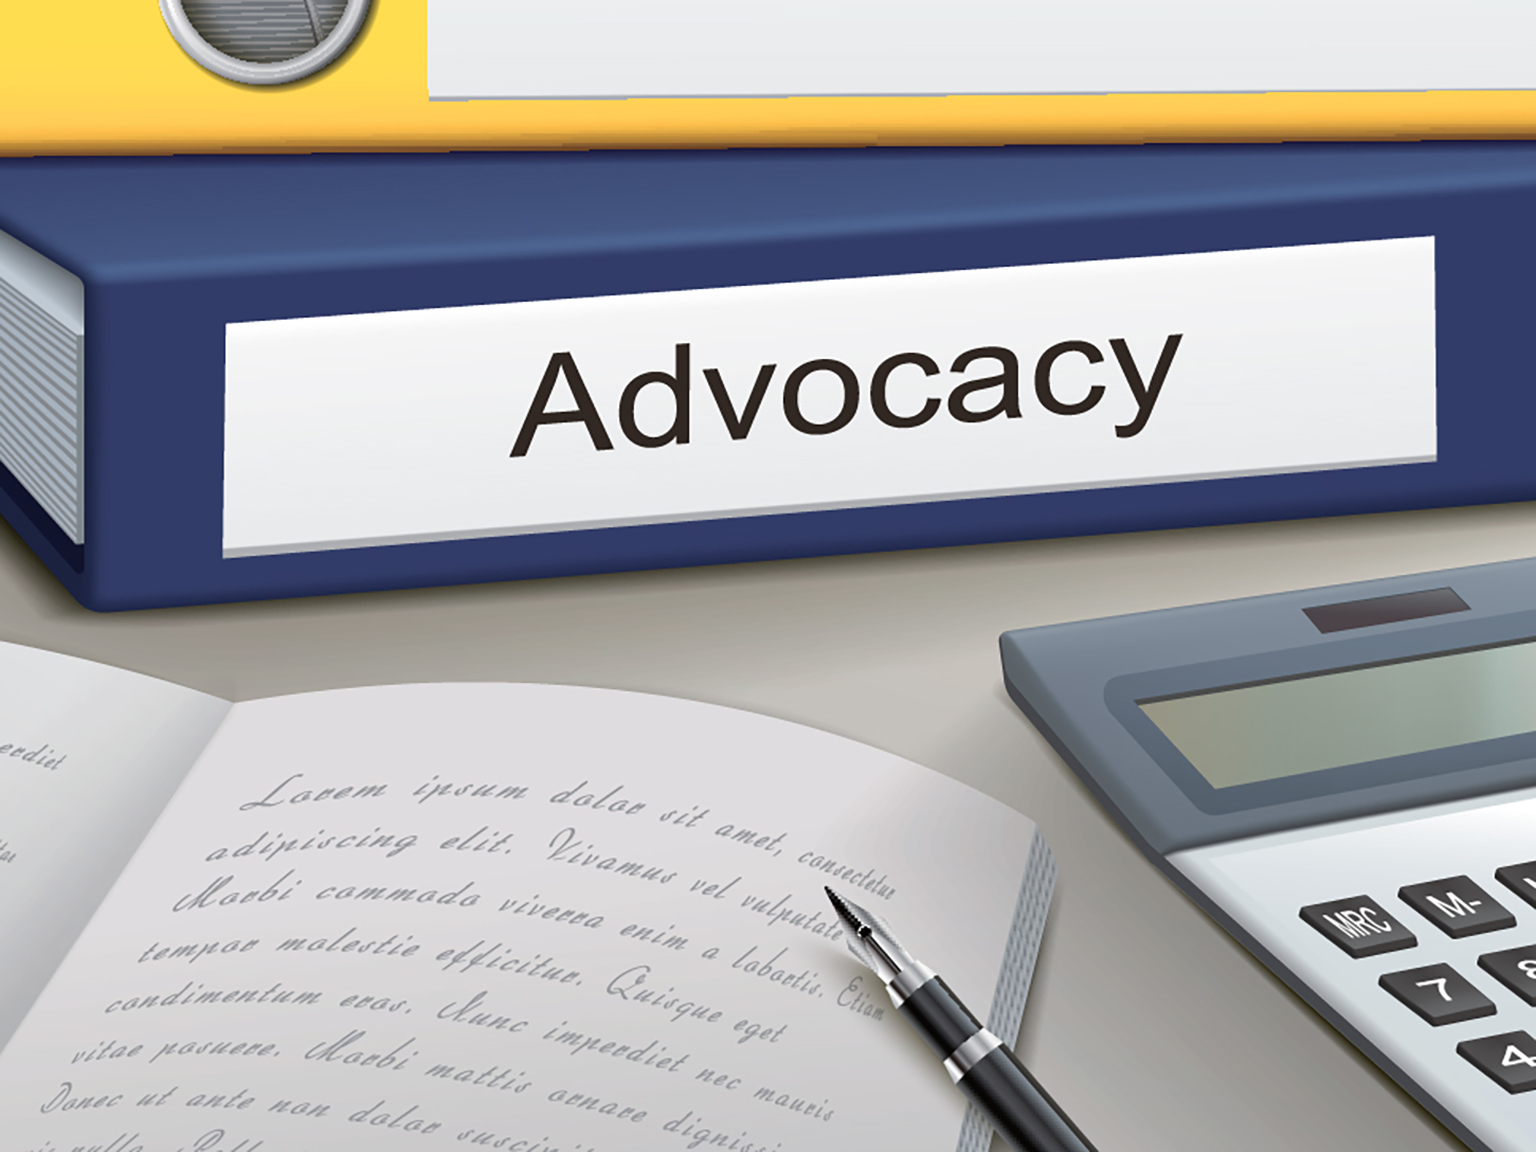 Illustration of advocacy binders, notebook, pen, and calculator